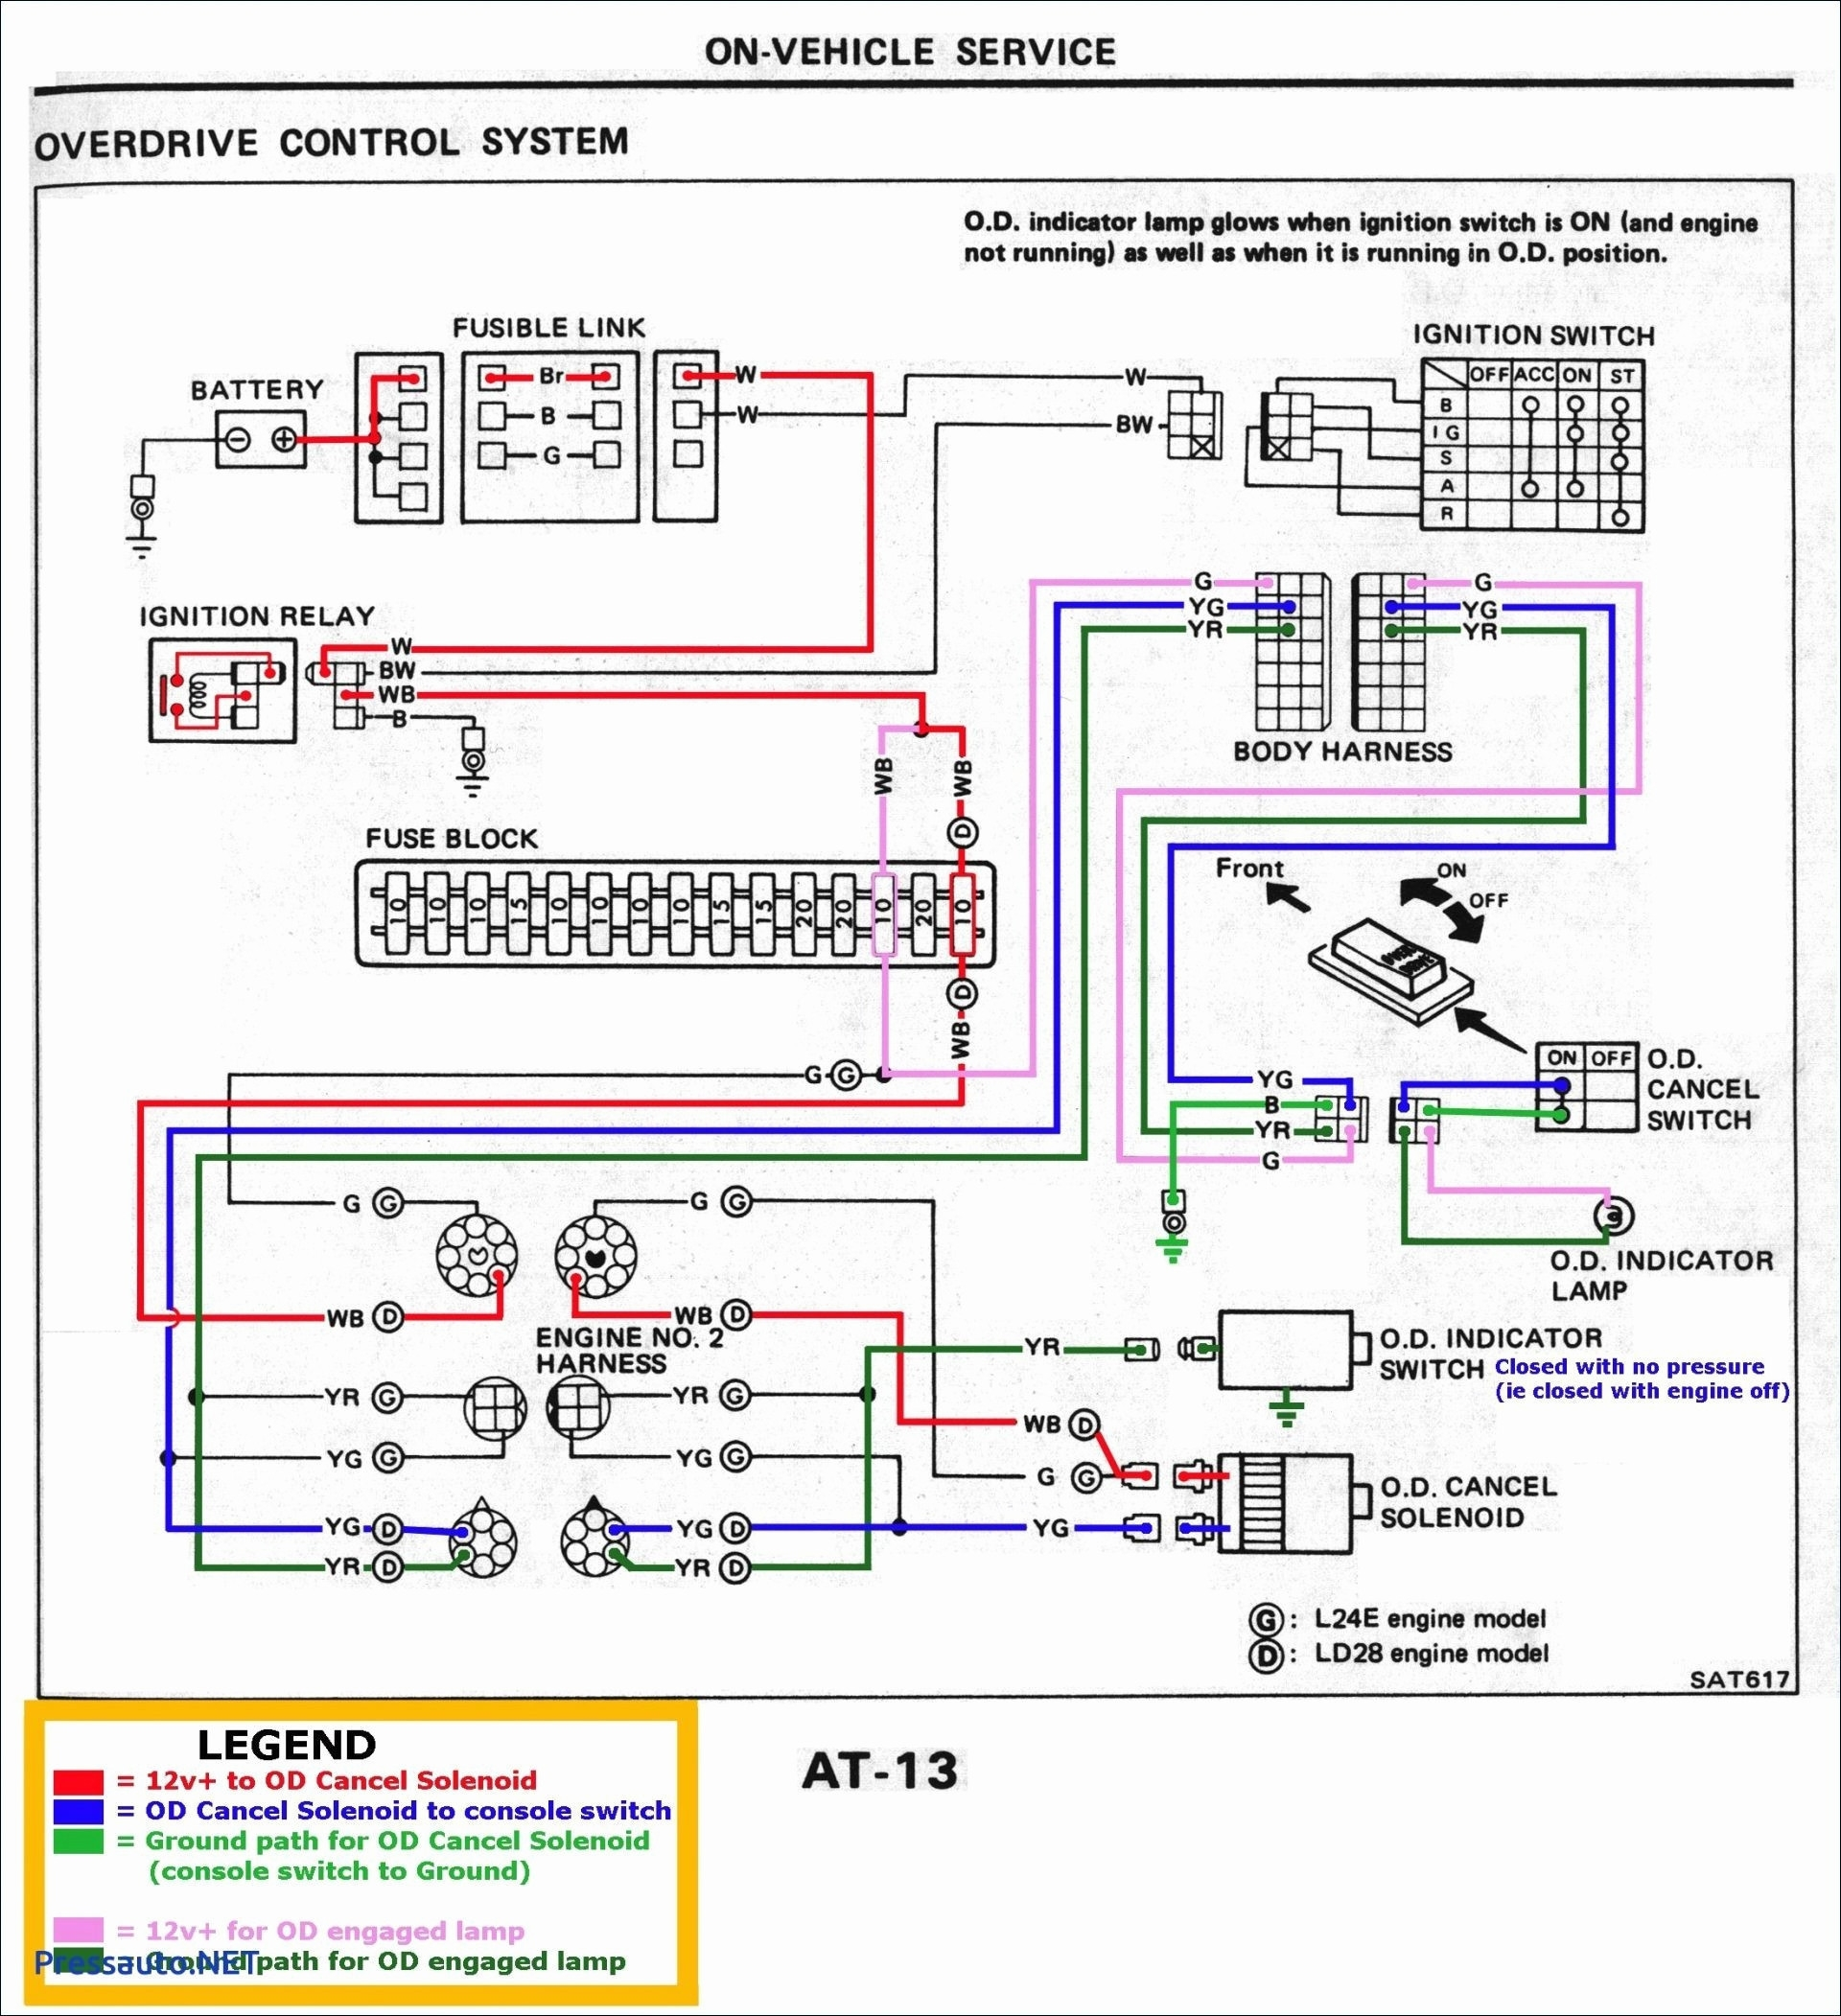 delco alternator wiring diagram Collection-Volvo Alternator Wiring Diagram 2017 Motorola Alternator Wiring Diagram John Deere Fresh Volvo 122 7-r